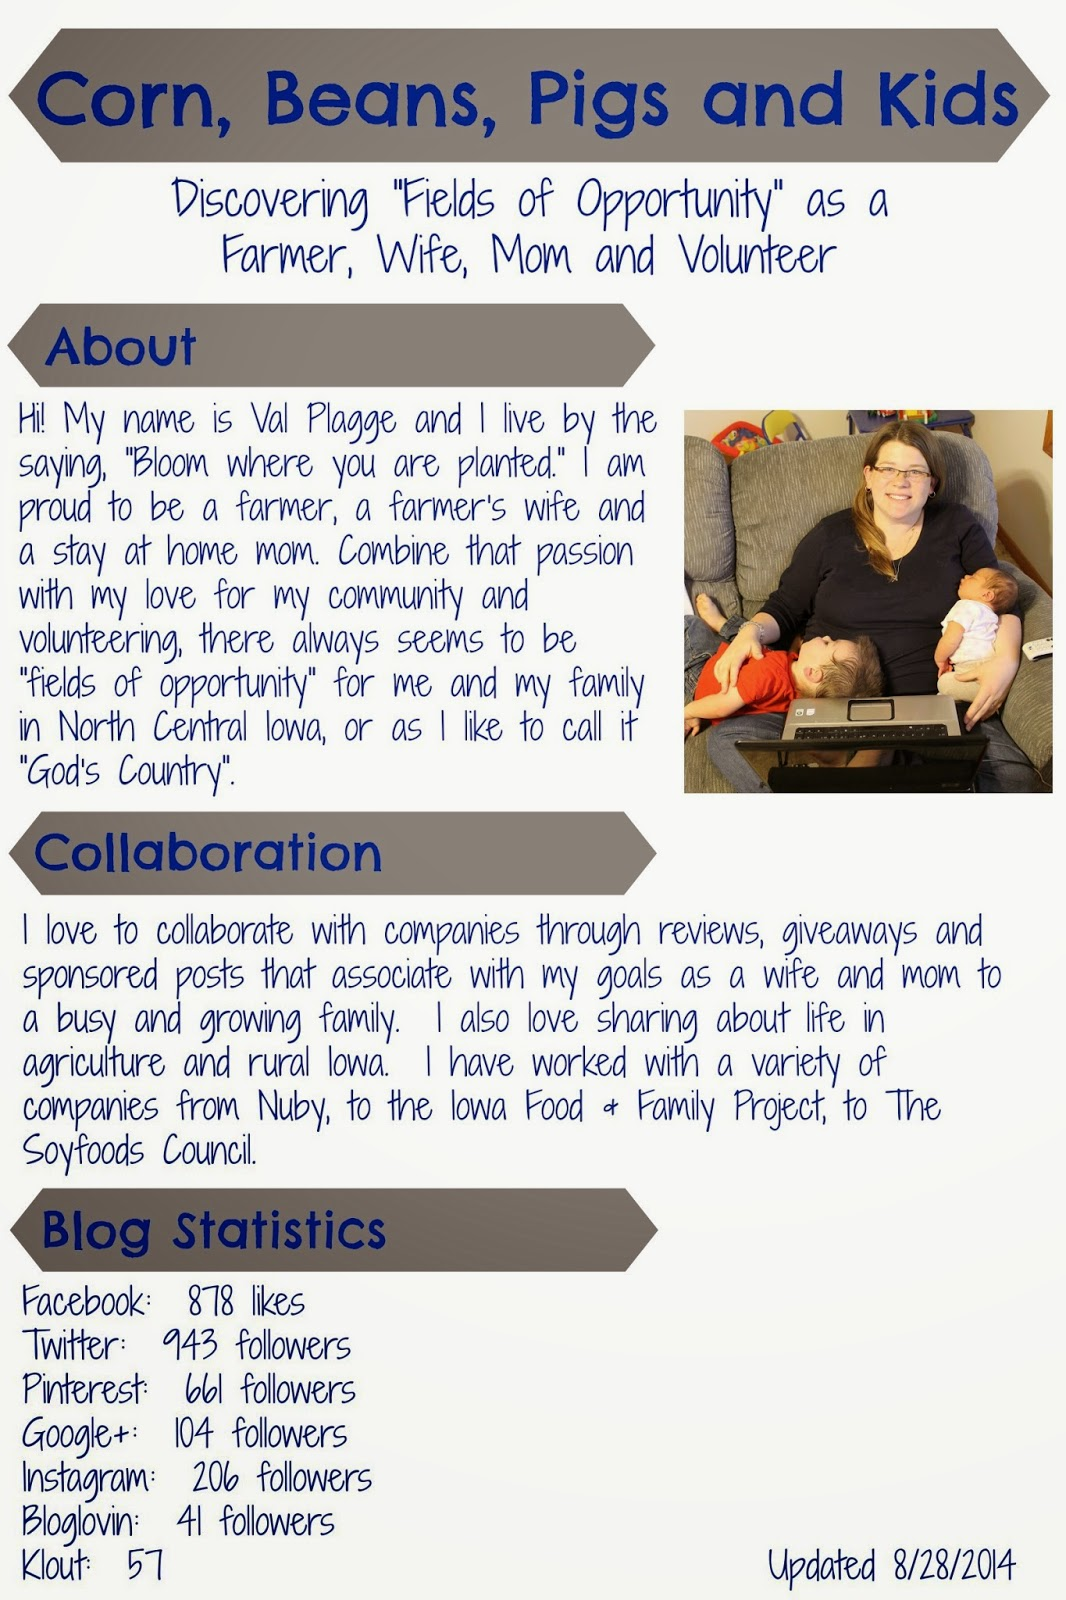 Blog Media Kit example - using free version of PicMonkey